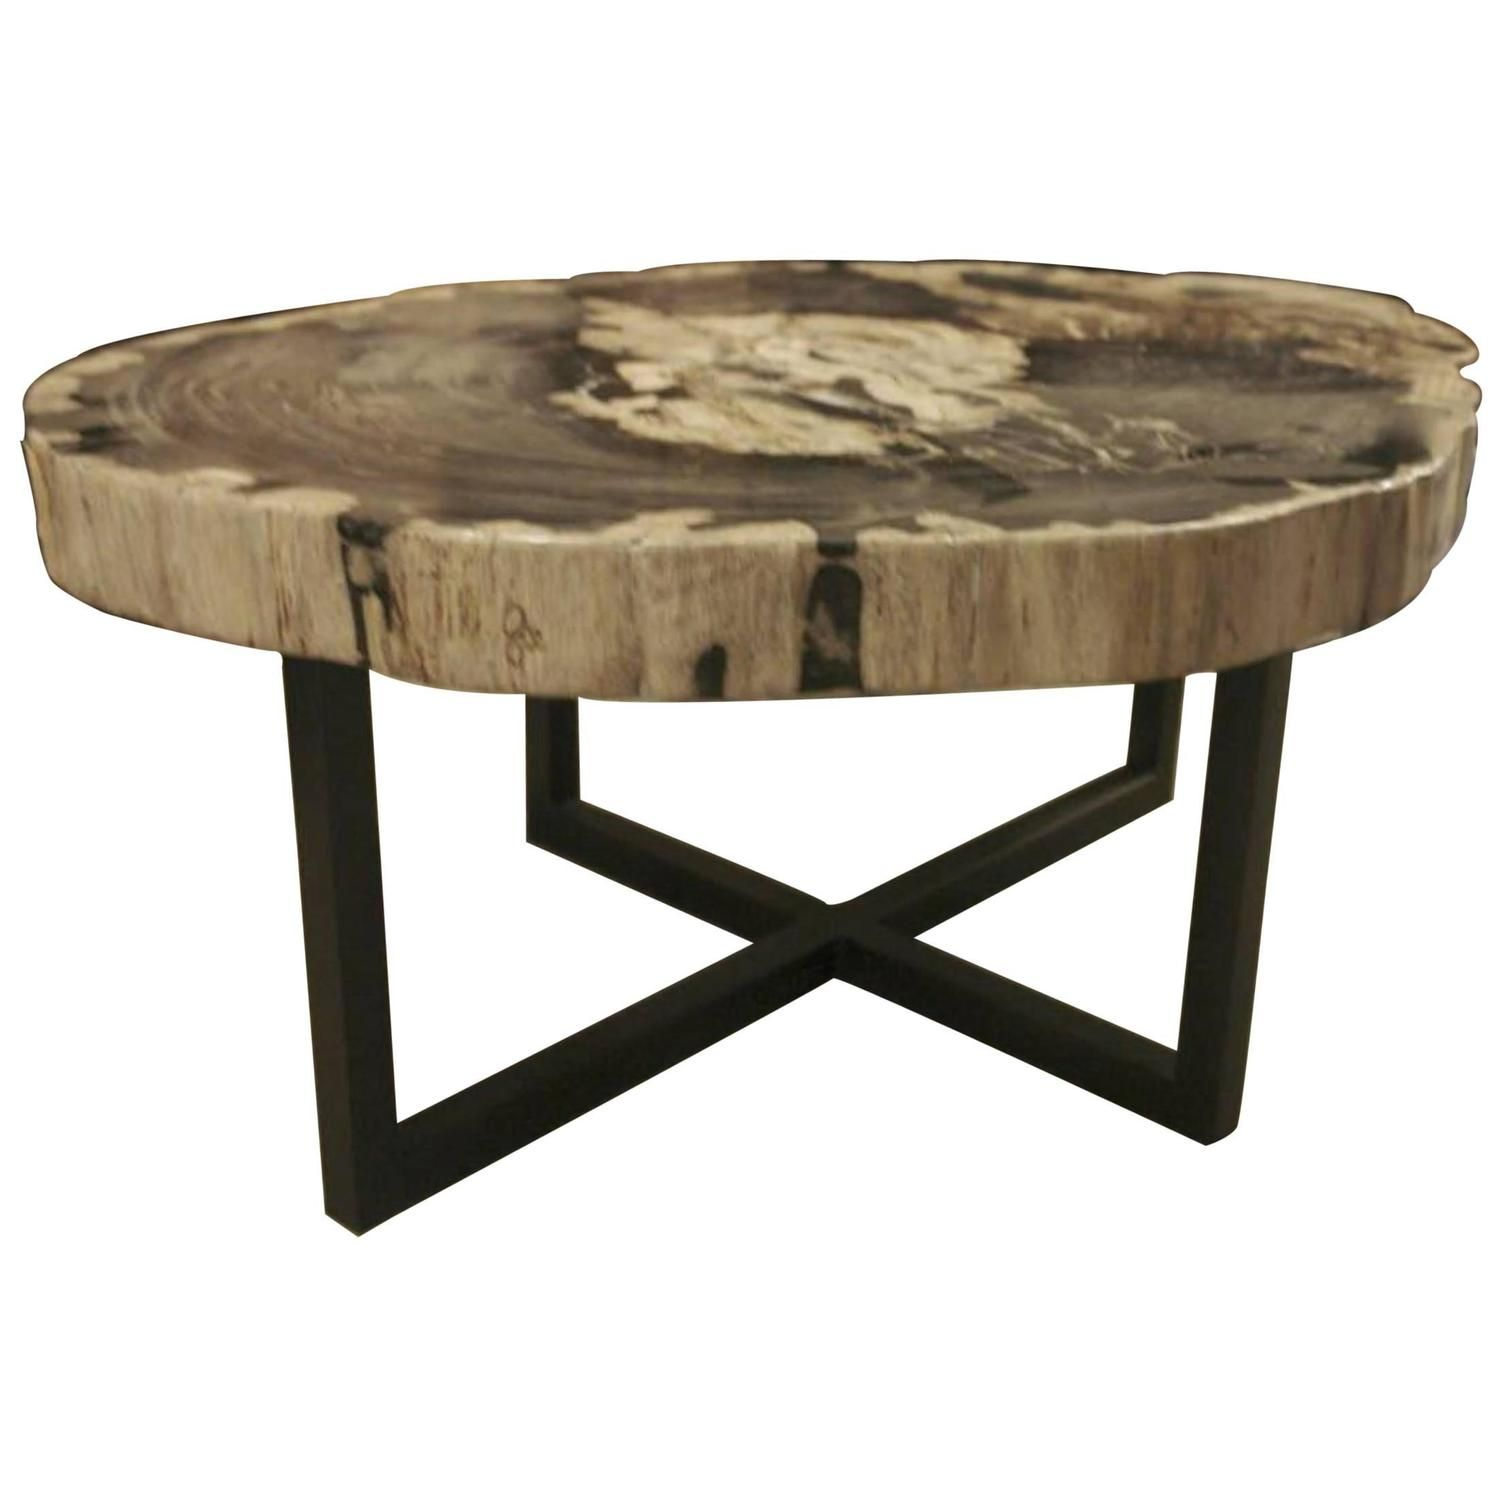 Petrified Wood Extra Large Extra Thick Coffee Table Indonesia Contemporary Coffee Table Table Petrified Wood [ 1500 x 1500 Pixel ]